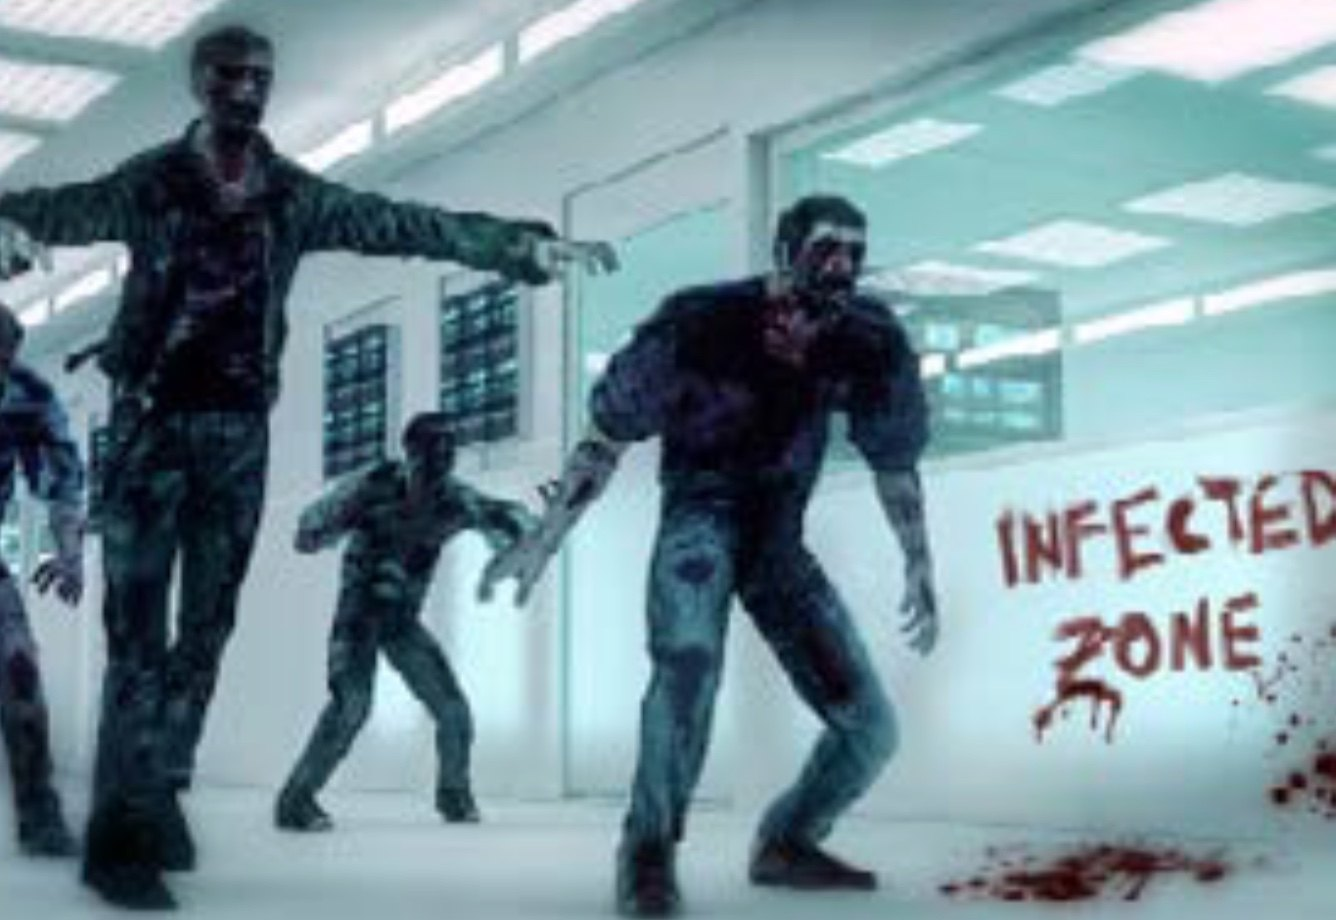 The Highly Improbable Zombie Attack…  And Why Your Clients Are Concerned